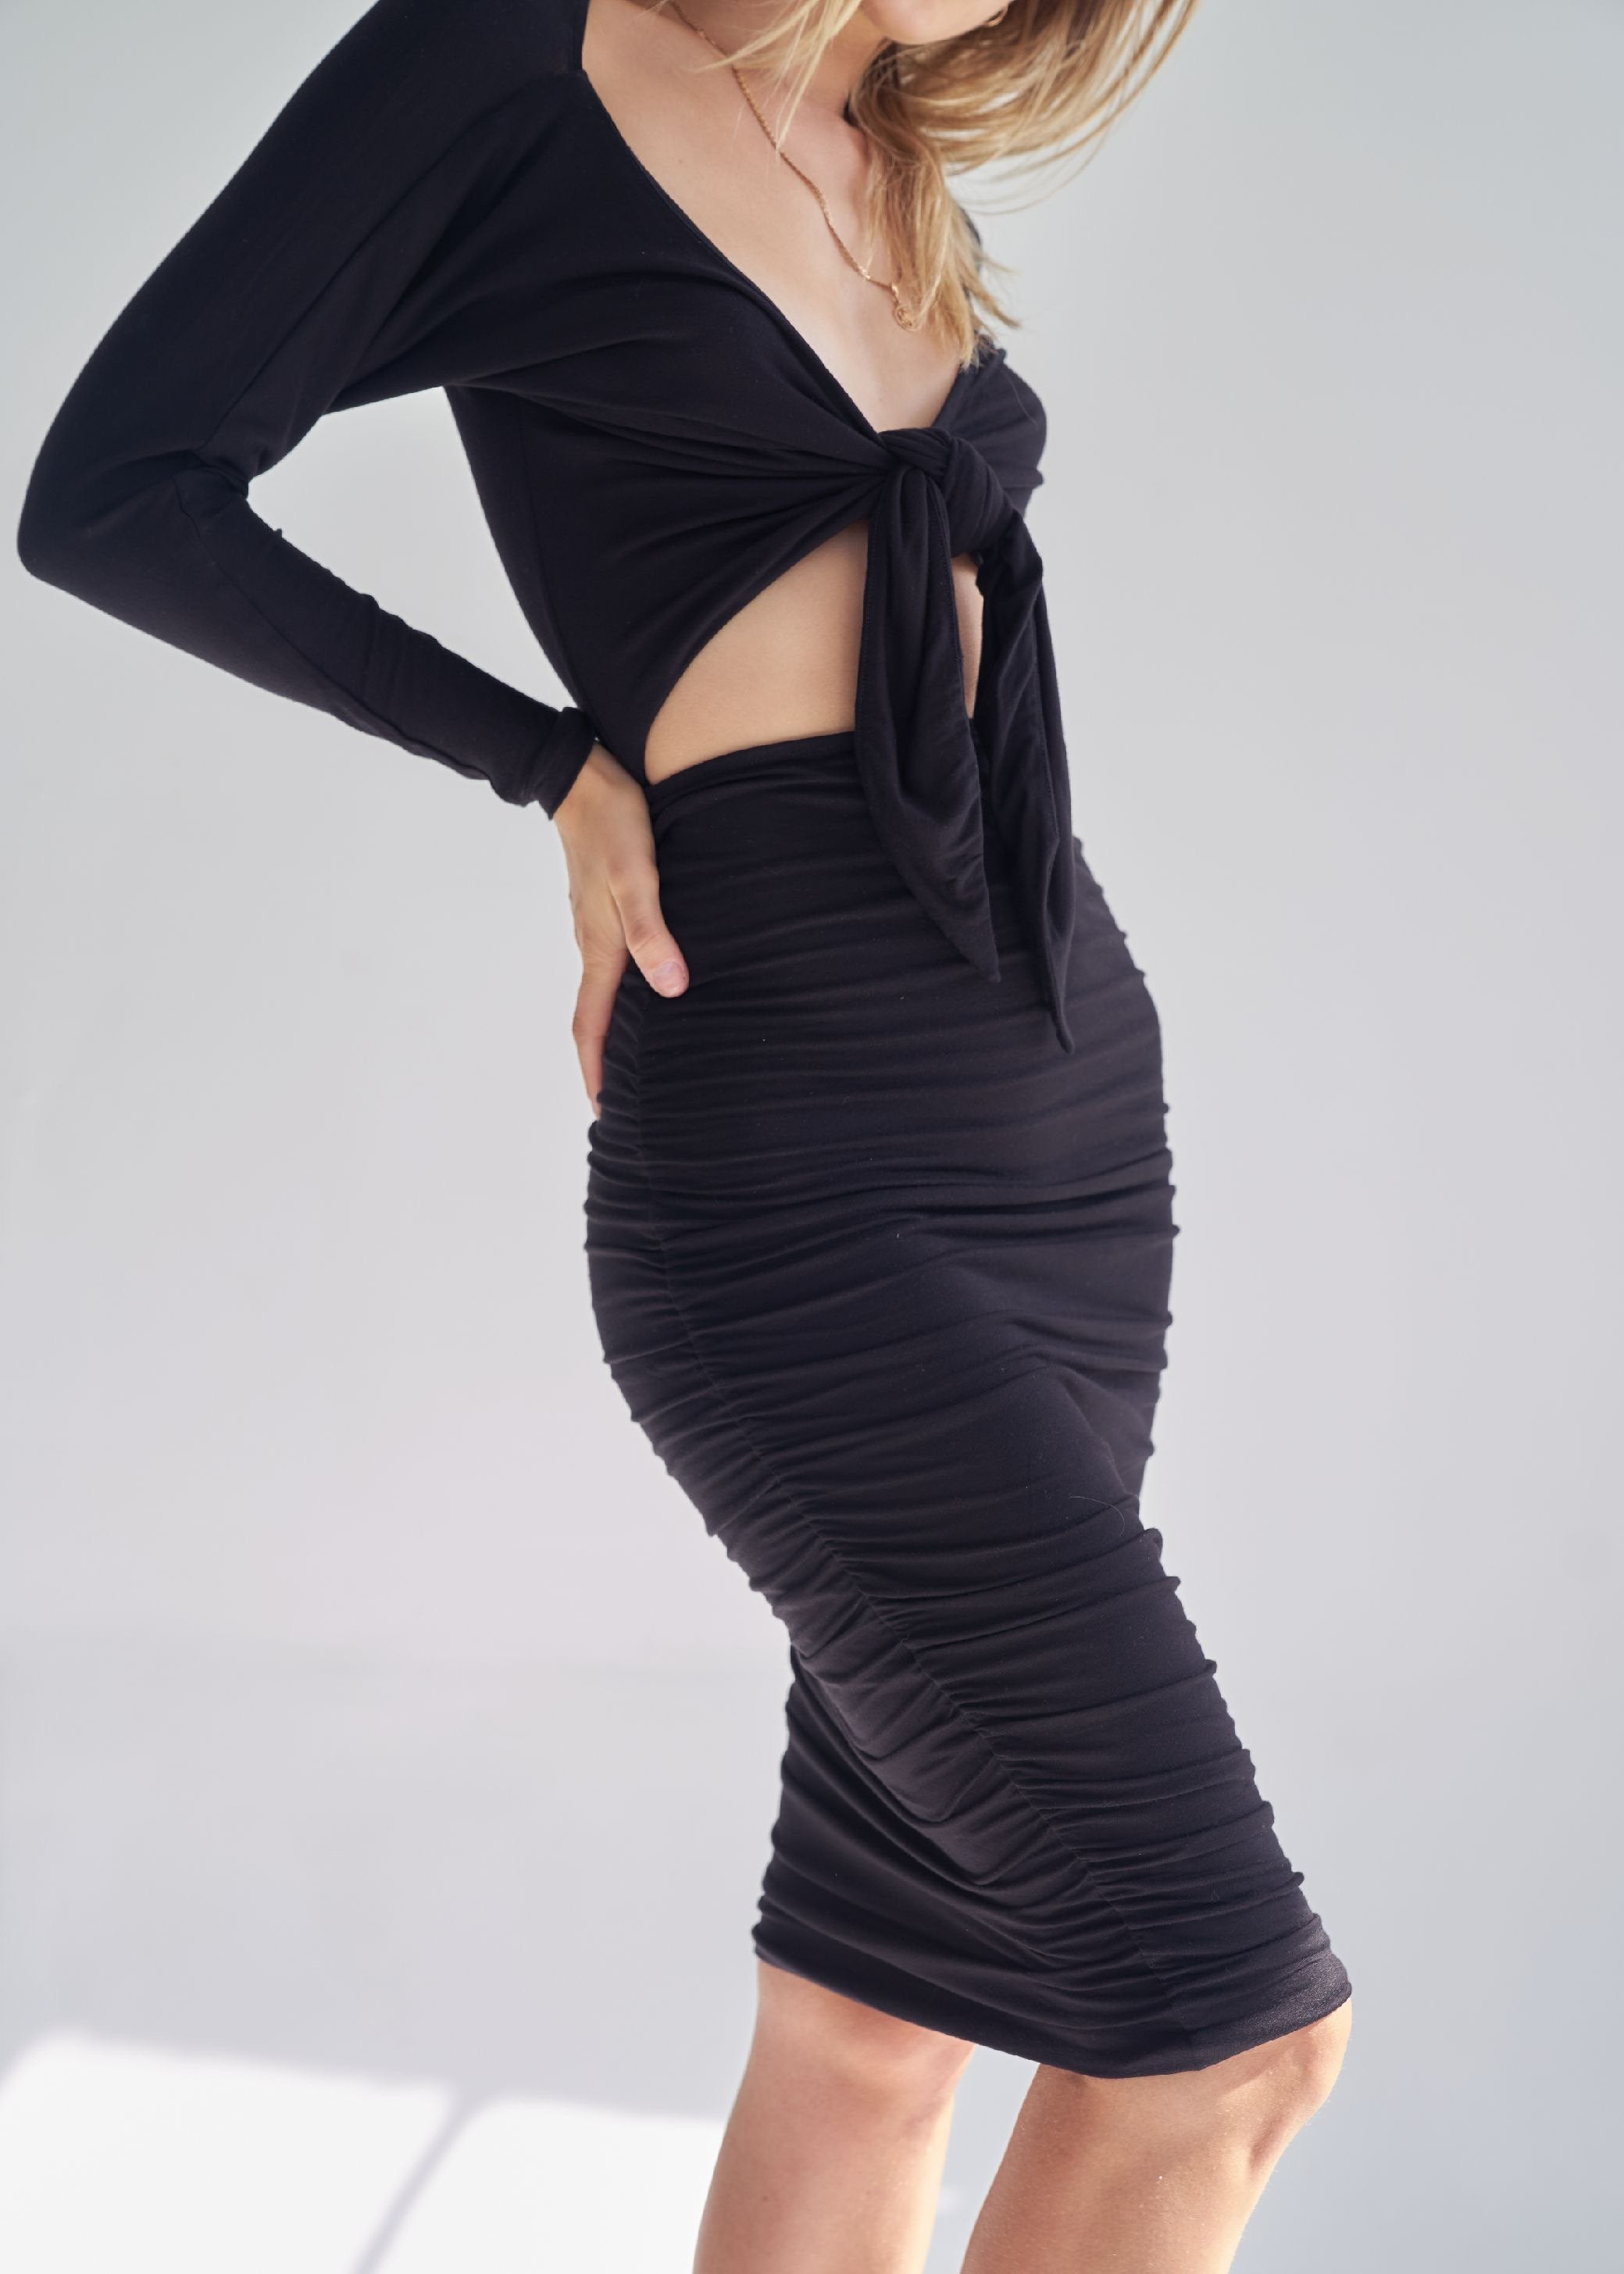 Black Le Opera Knit Dress